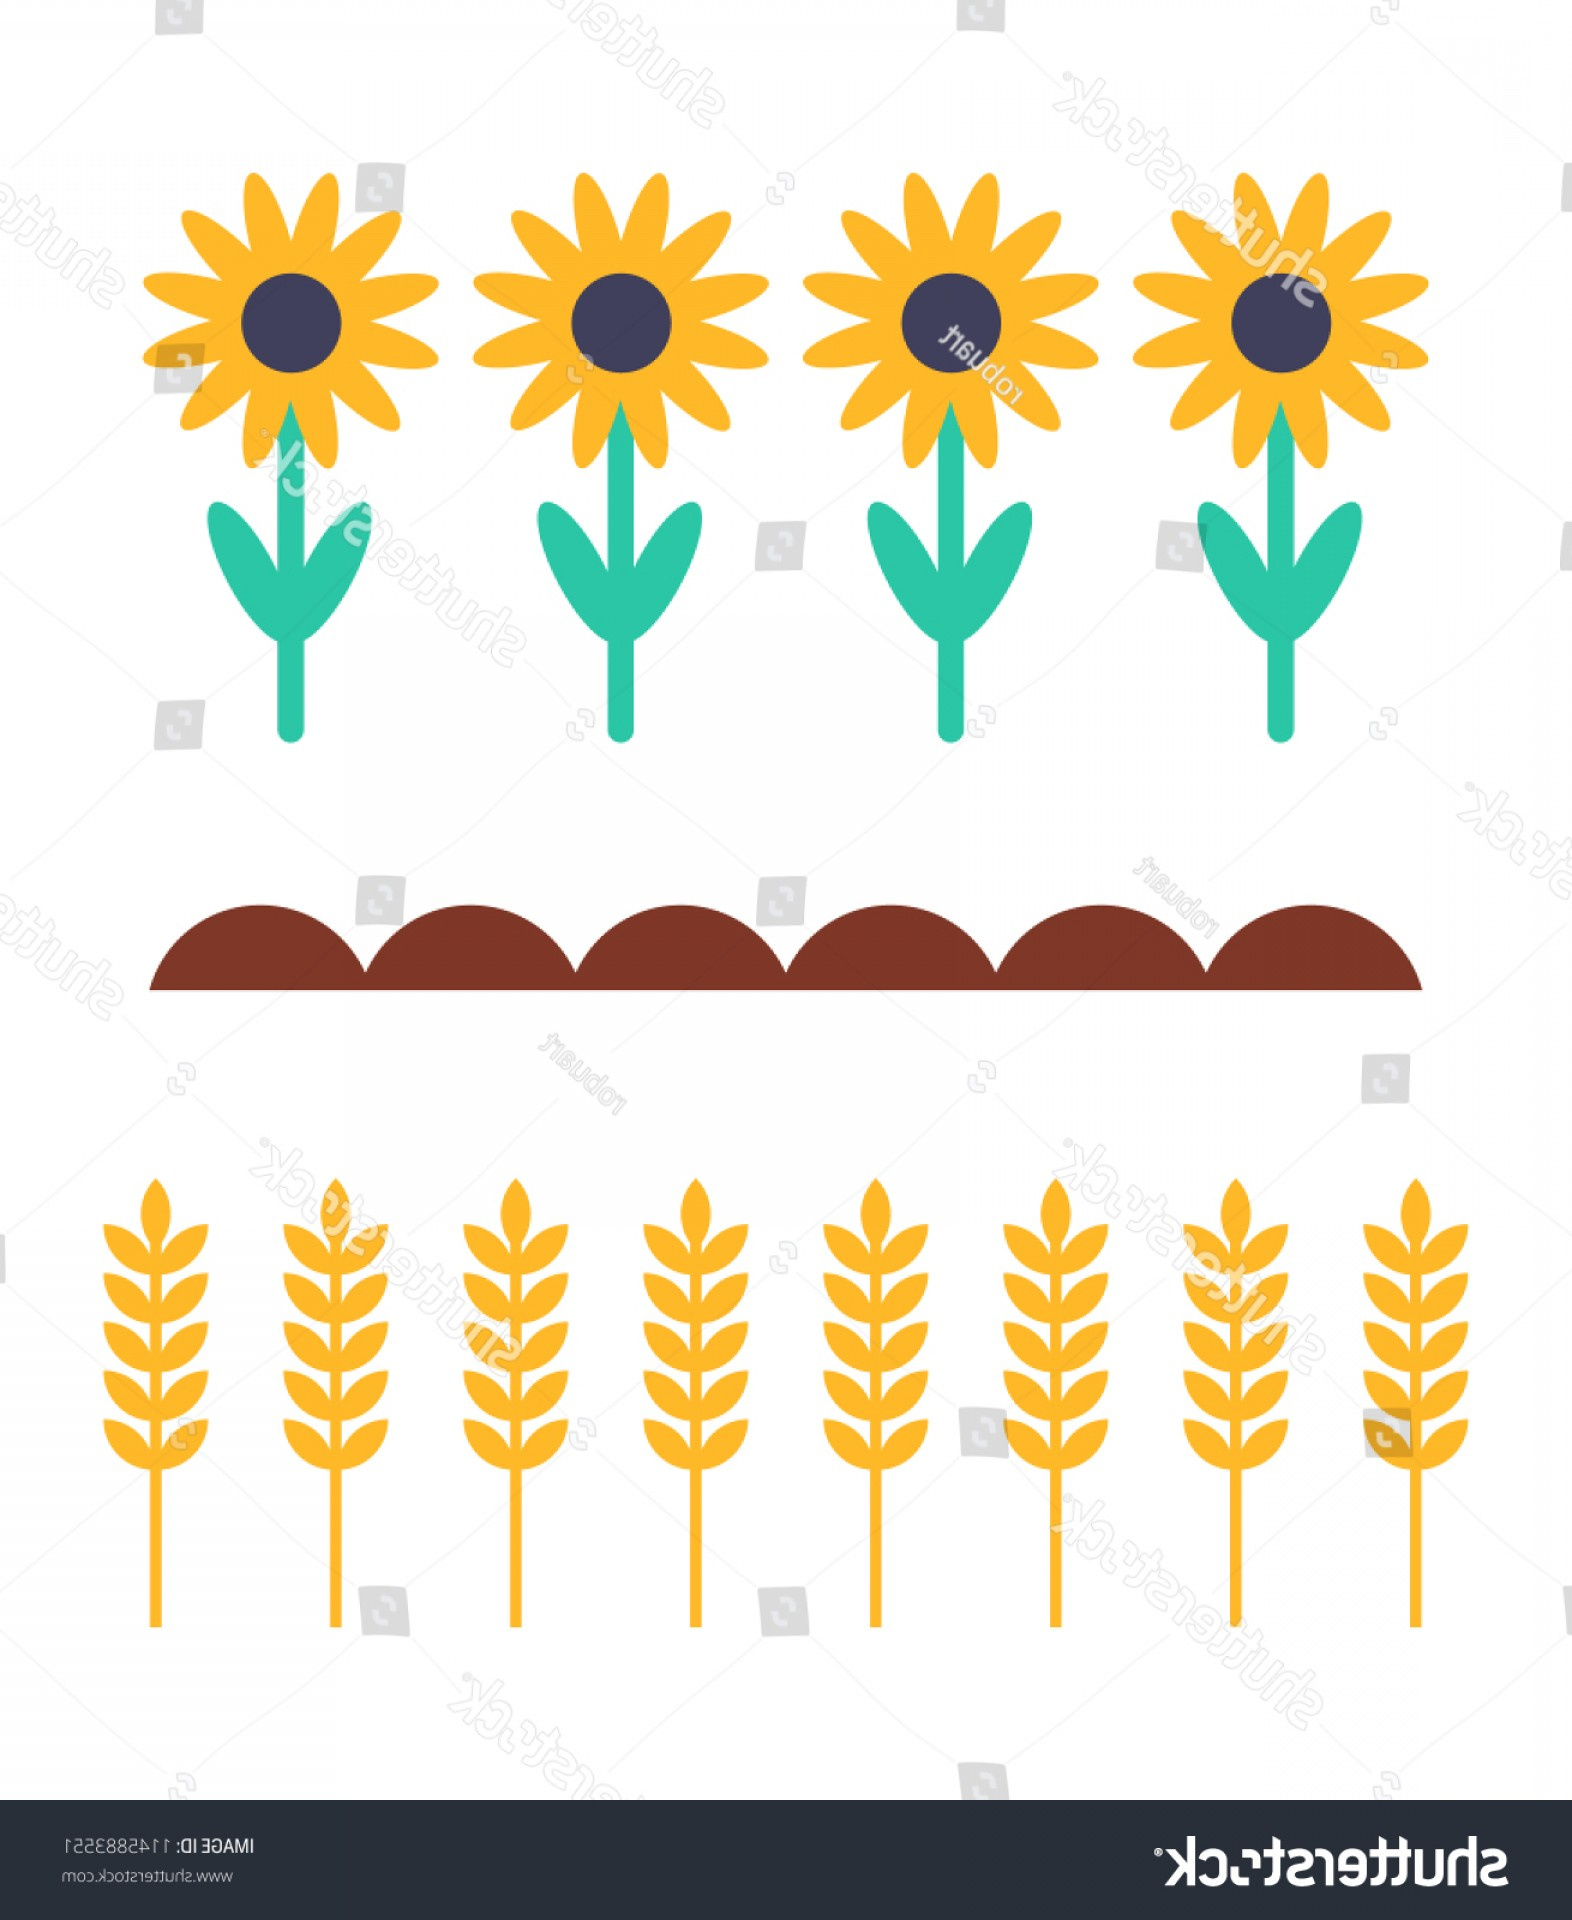 Wheat Flourishes Vector: Sunflowers Wheat Products Farming Plants Ground